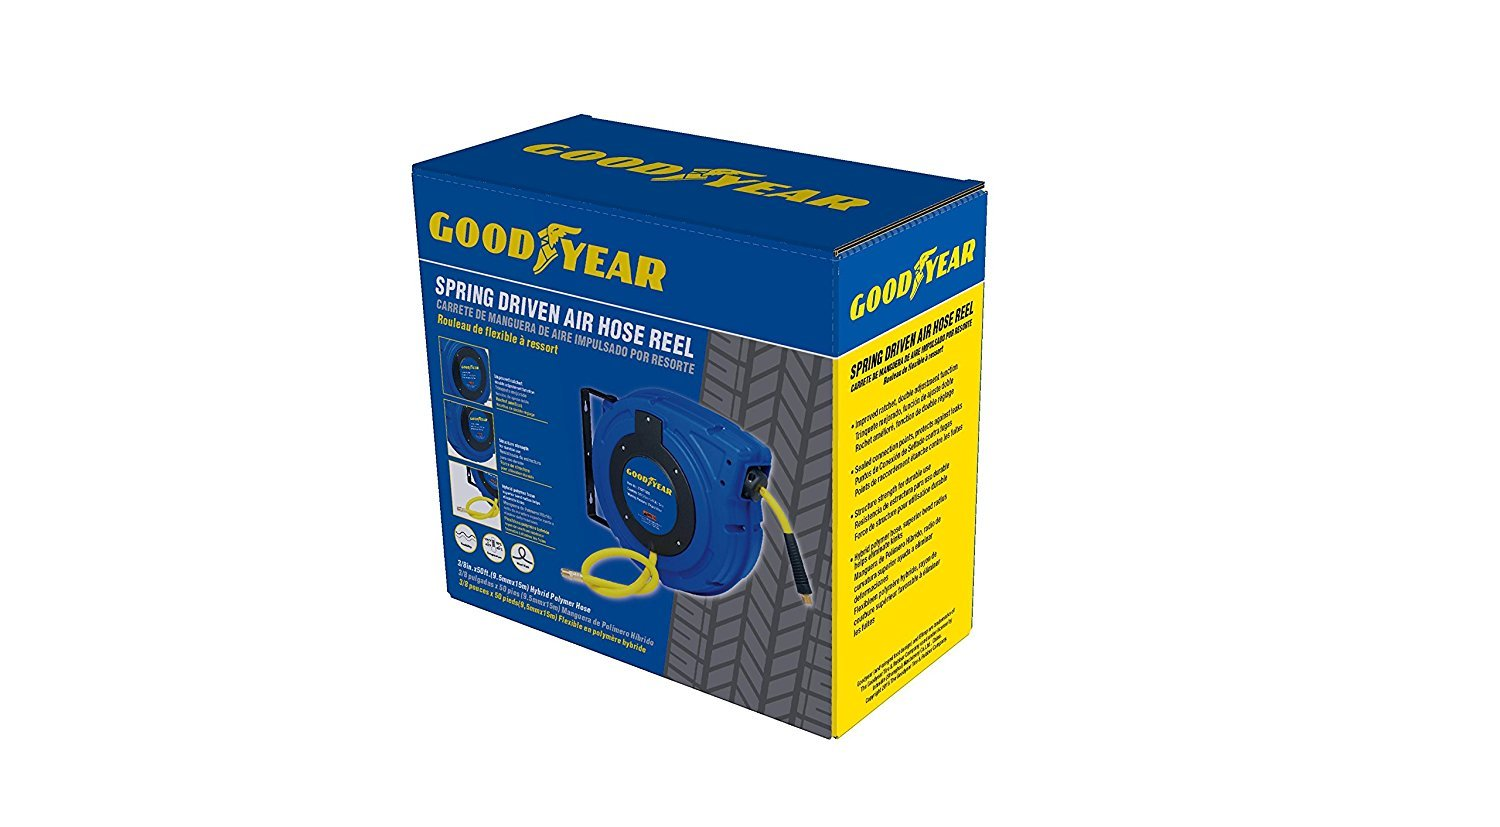 Goodyear 27527153G Enclosed Retractable Air Compressor/Water Hose Reel with 3/8 in. x 50 ft. Hybrid Polymer Hose, Max. 300PSI by Goodyear (Image #7)